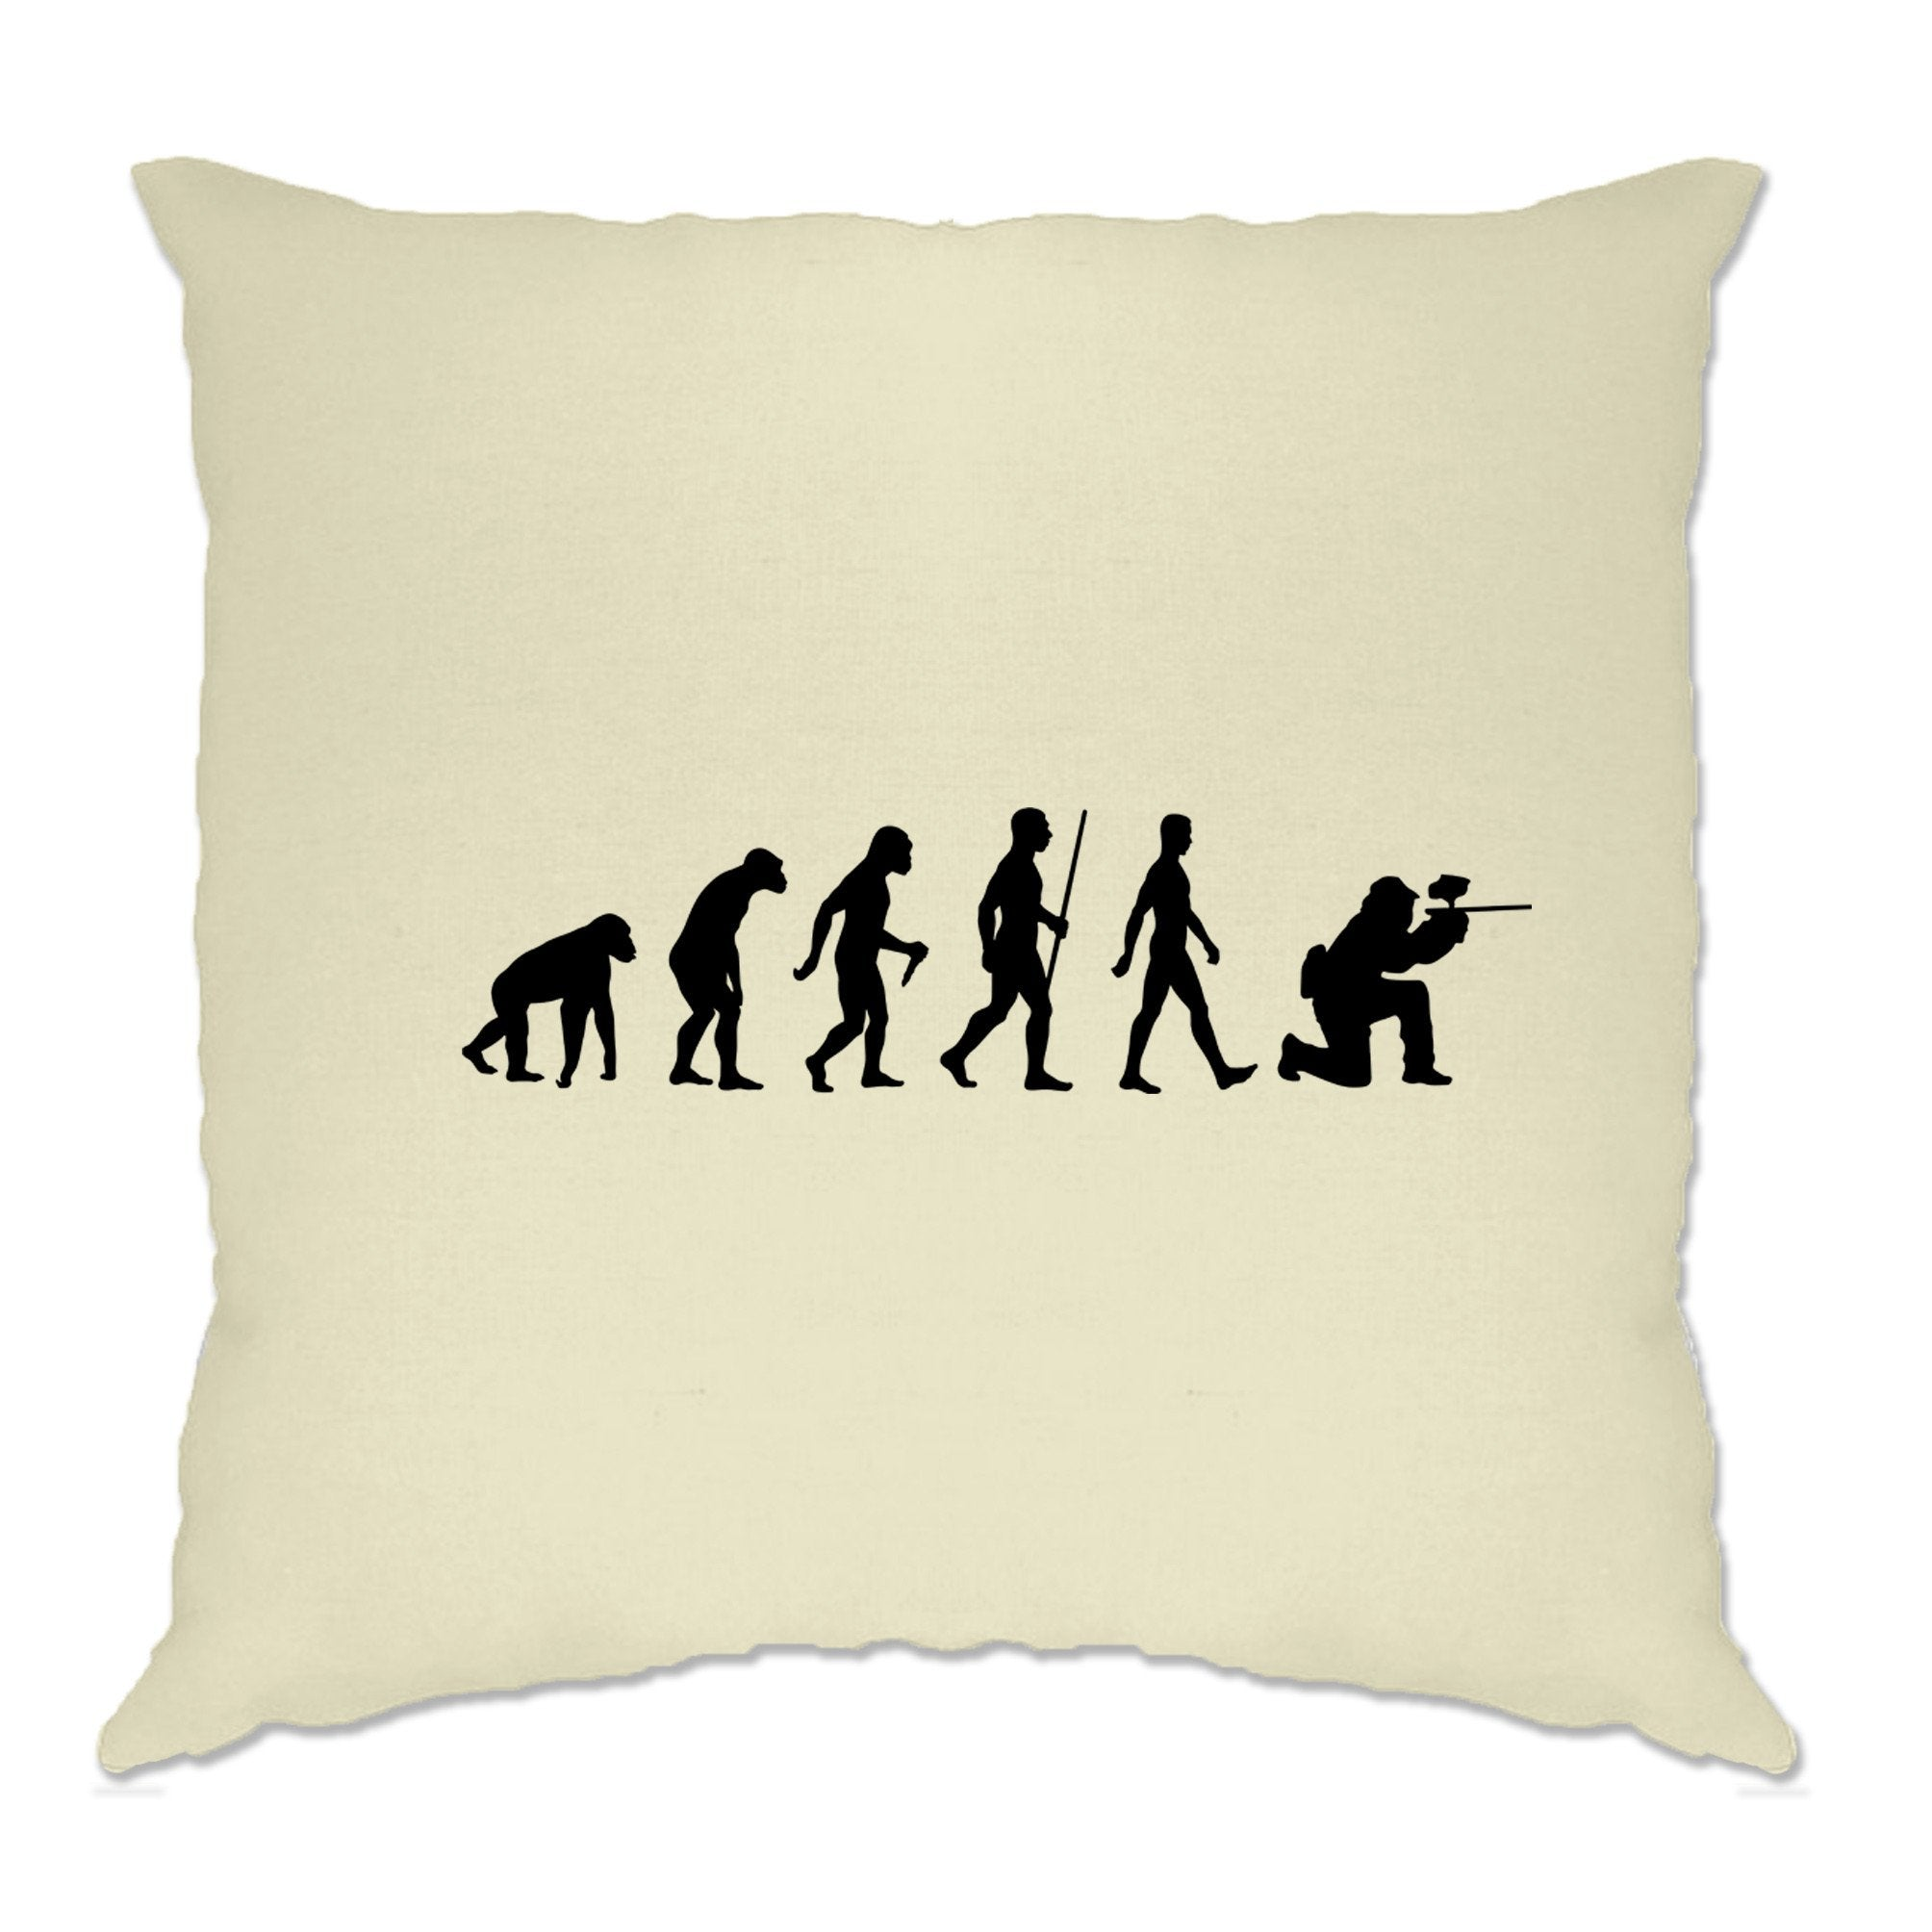 Sports Cushion Cover The Evolution Of A Paintballer